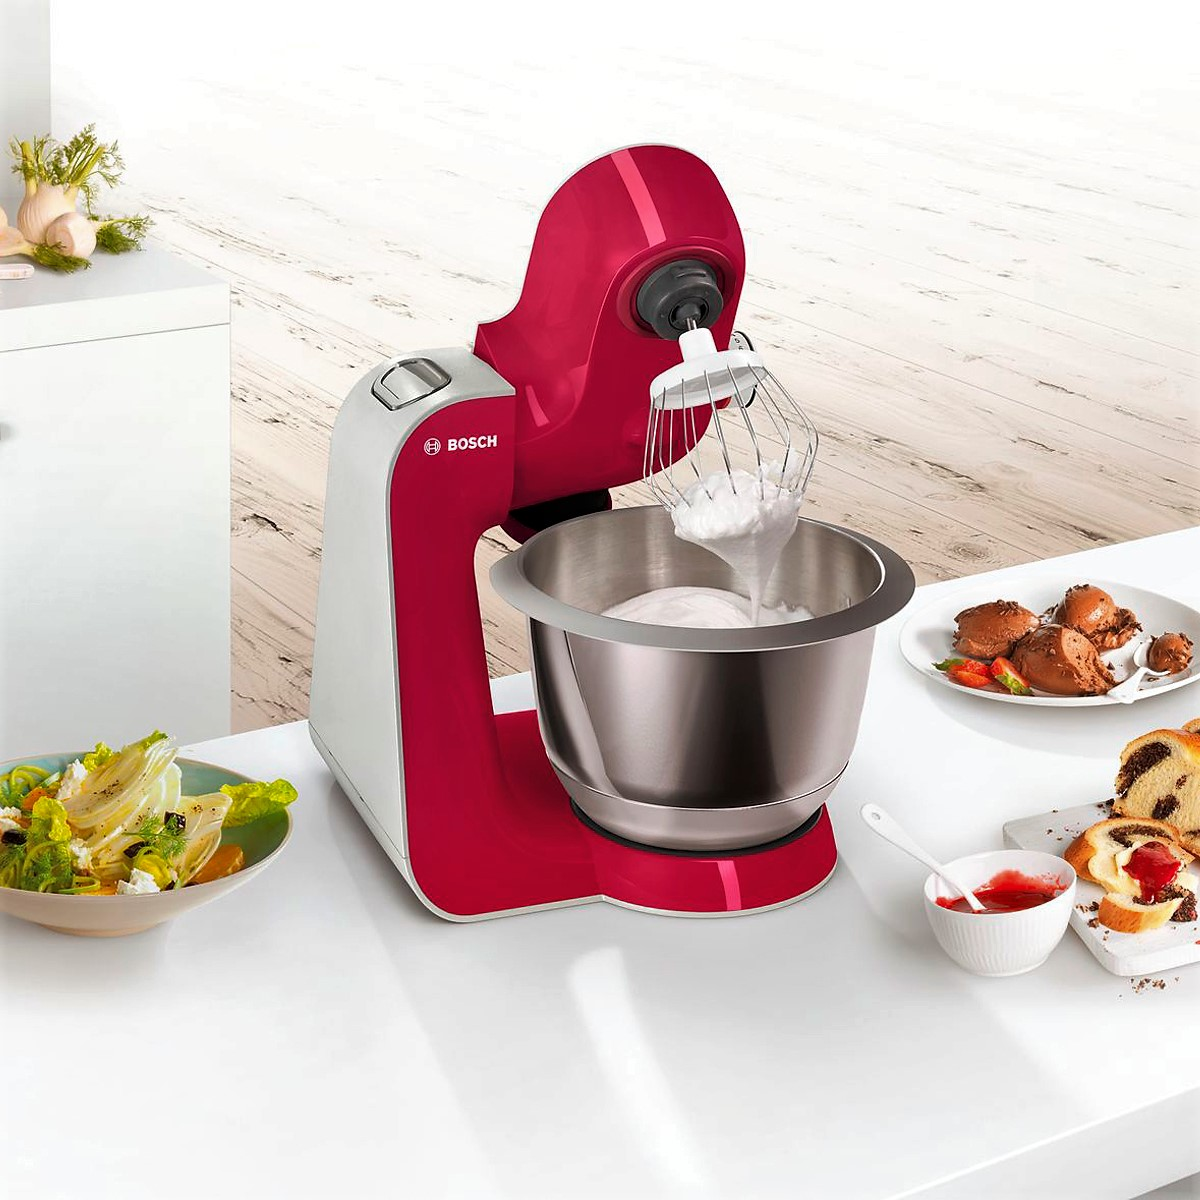 Bosch Kitchen Machine Mum5  Besto Blog